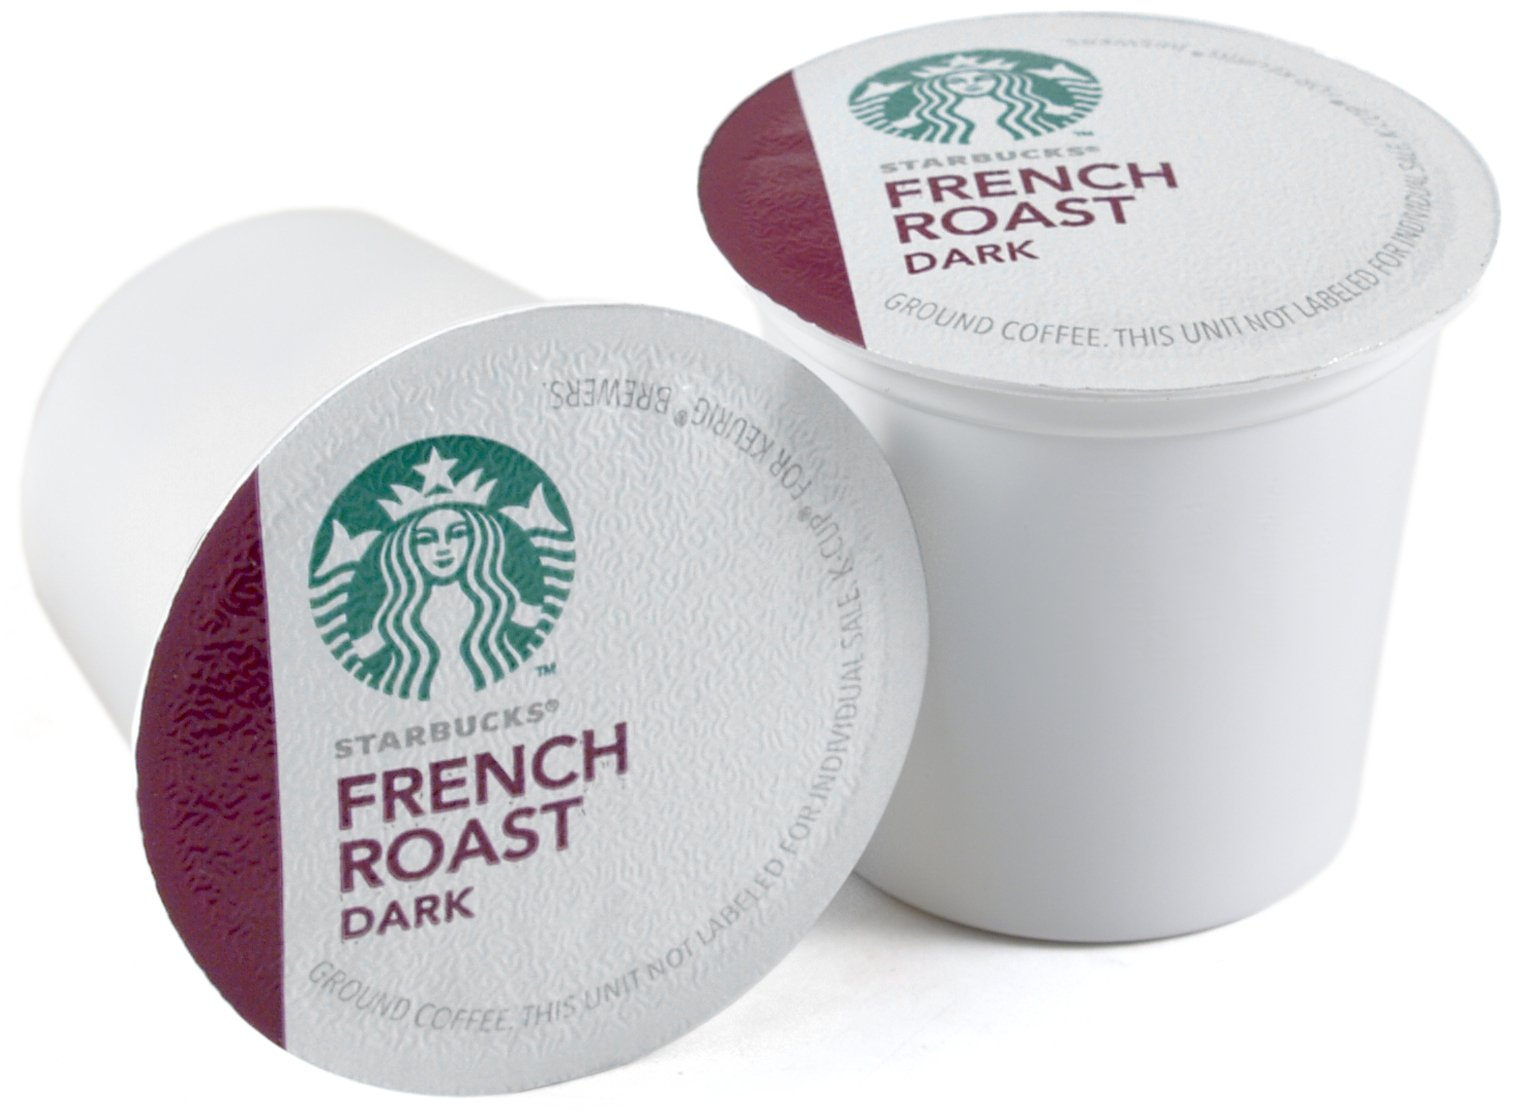 Starbucks French Roast Dark Roast Coffee Keurig K-Cups, 160 Count